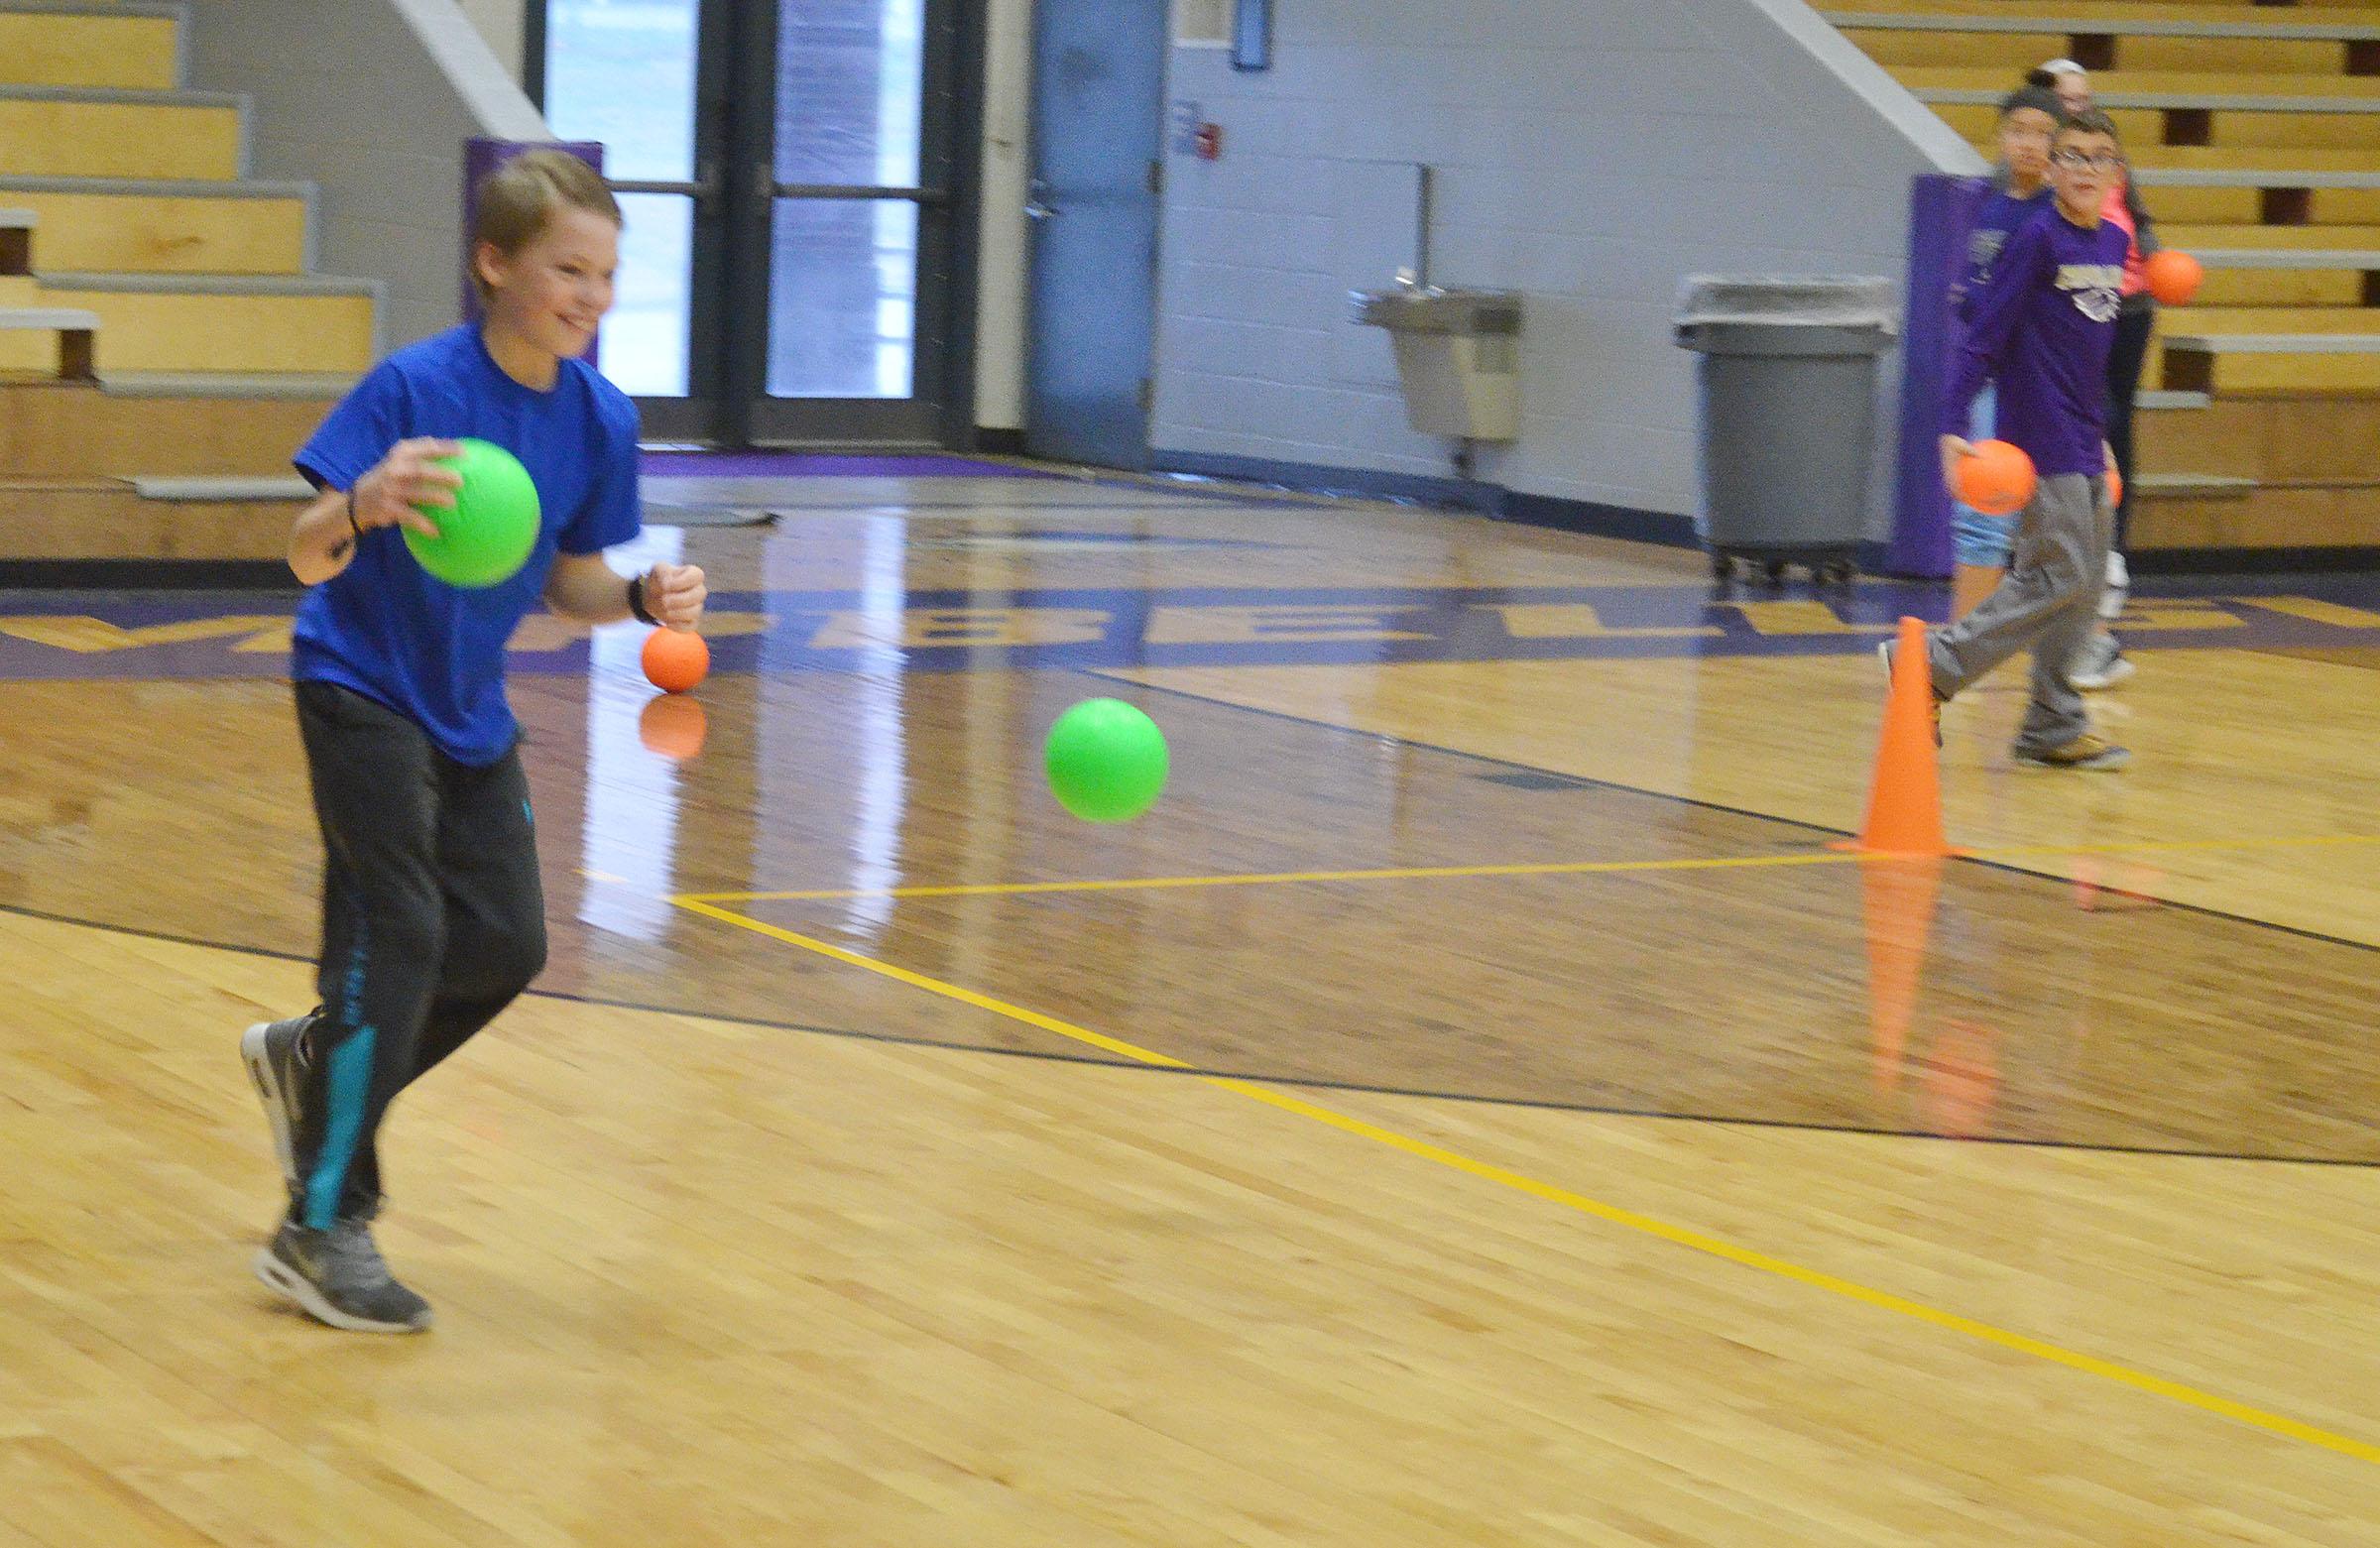 CMS seventh-grader Tuff Harper gets set to throw the dodgeball.